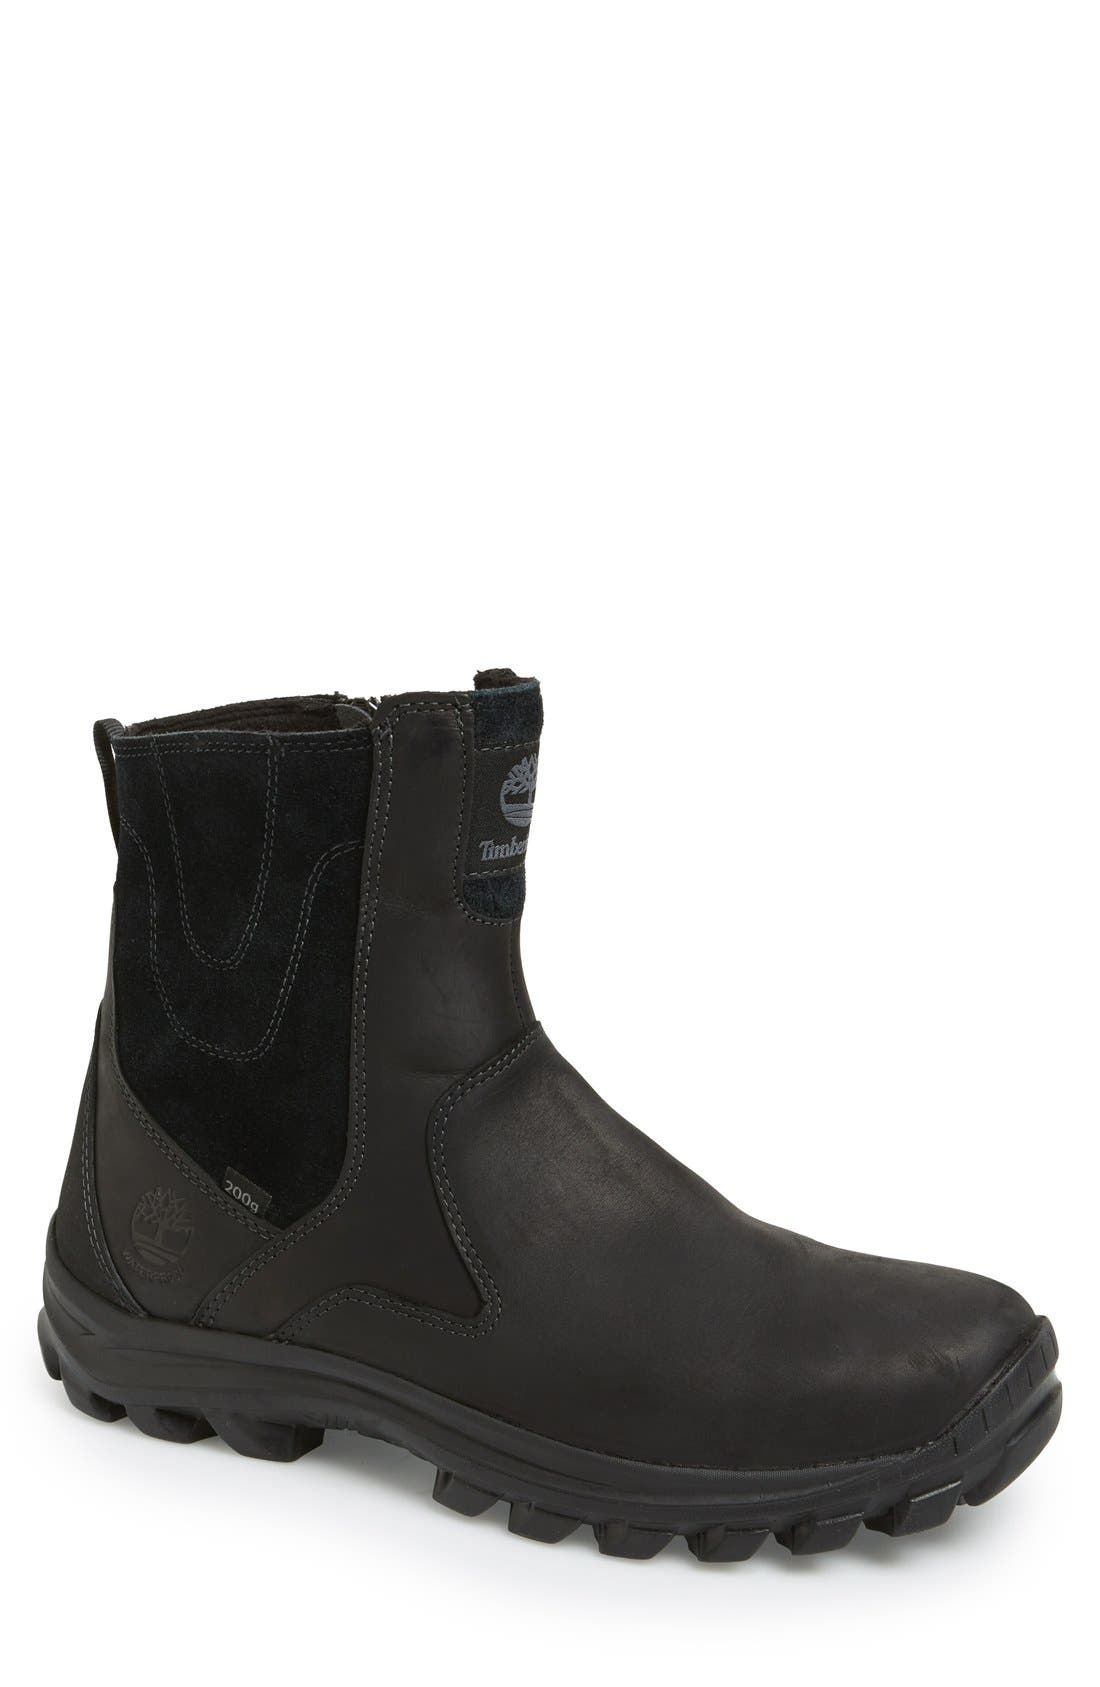 Main Image - Timberland 'Chillberg' Waterproof Boot (Men)